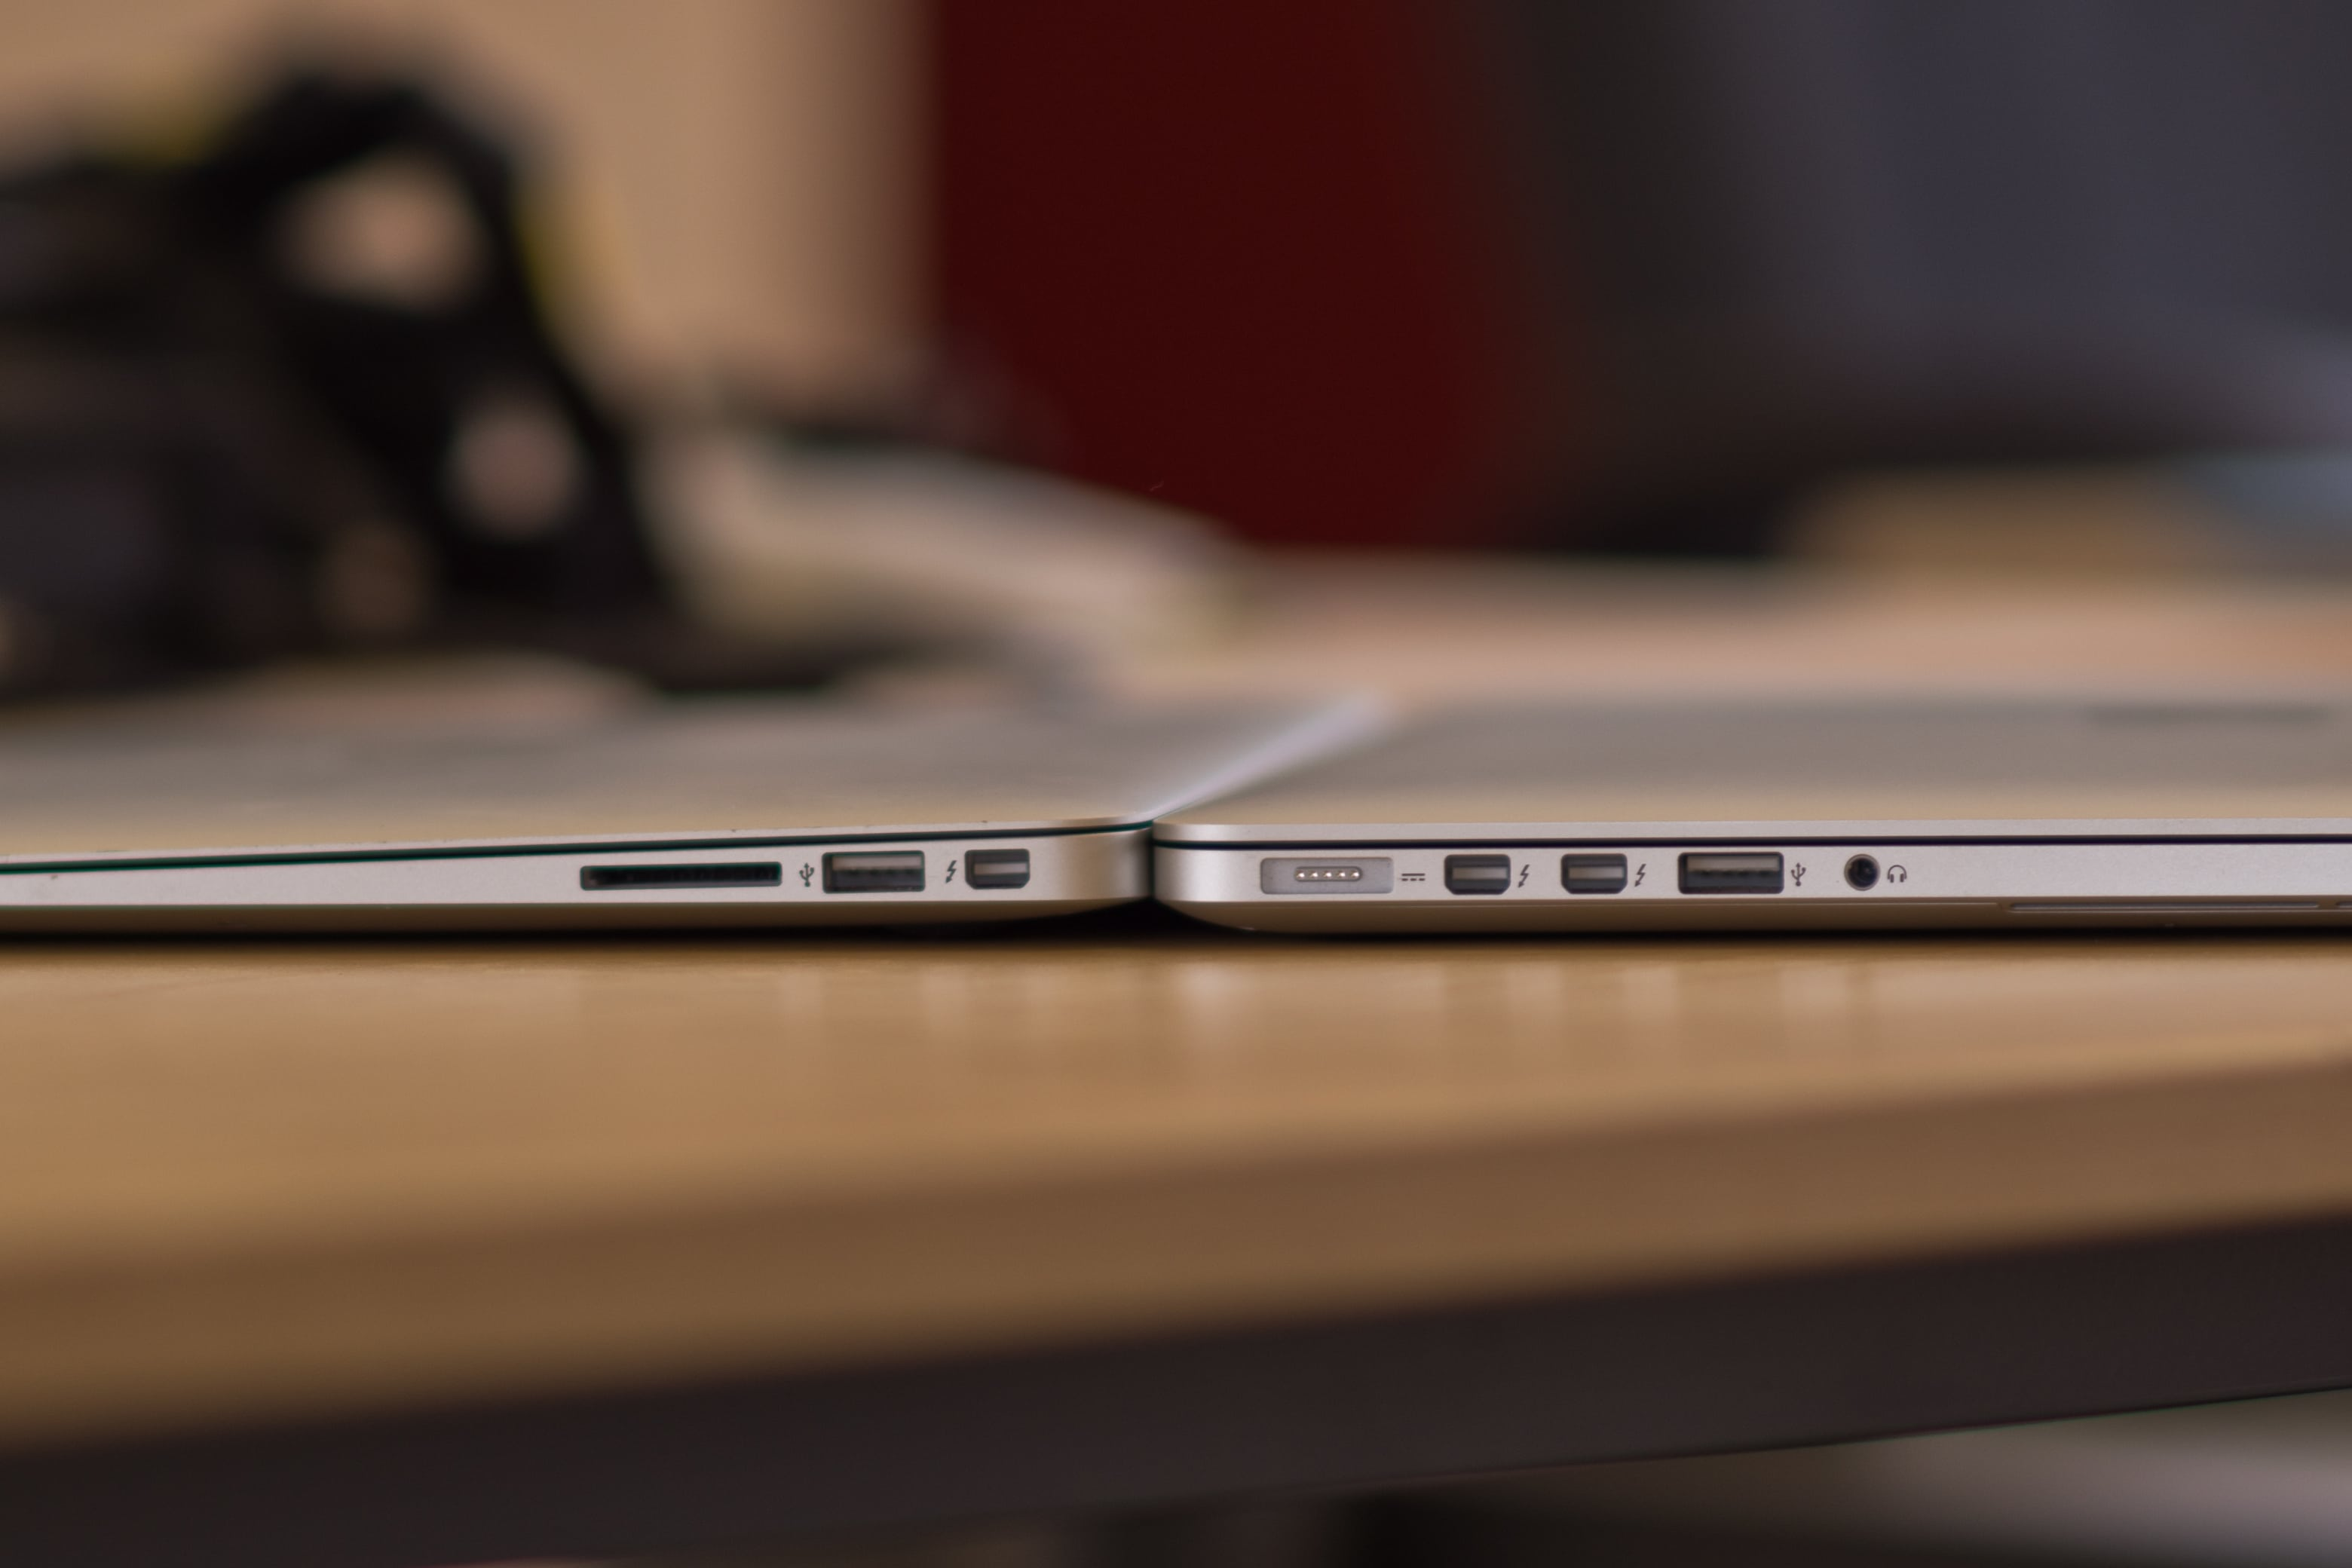 A picture of the Apple MacBook Pro with Retina Display's thickness compared to the MacBook Air.